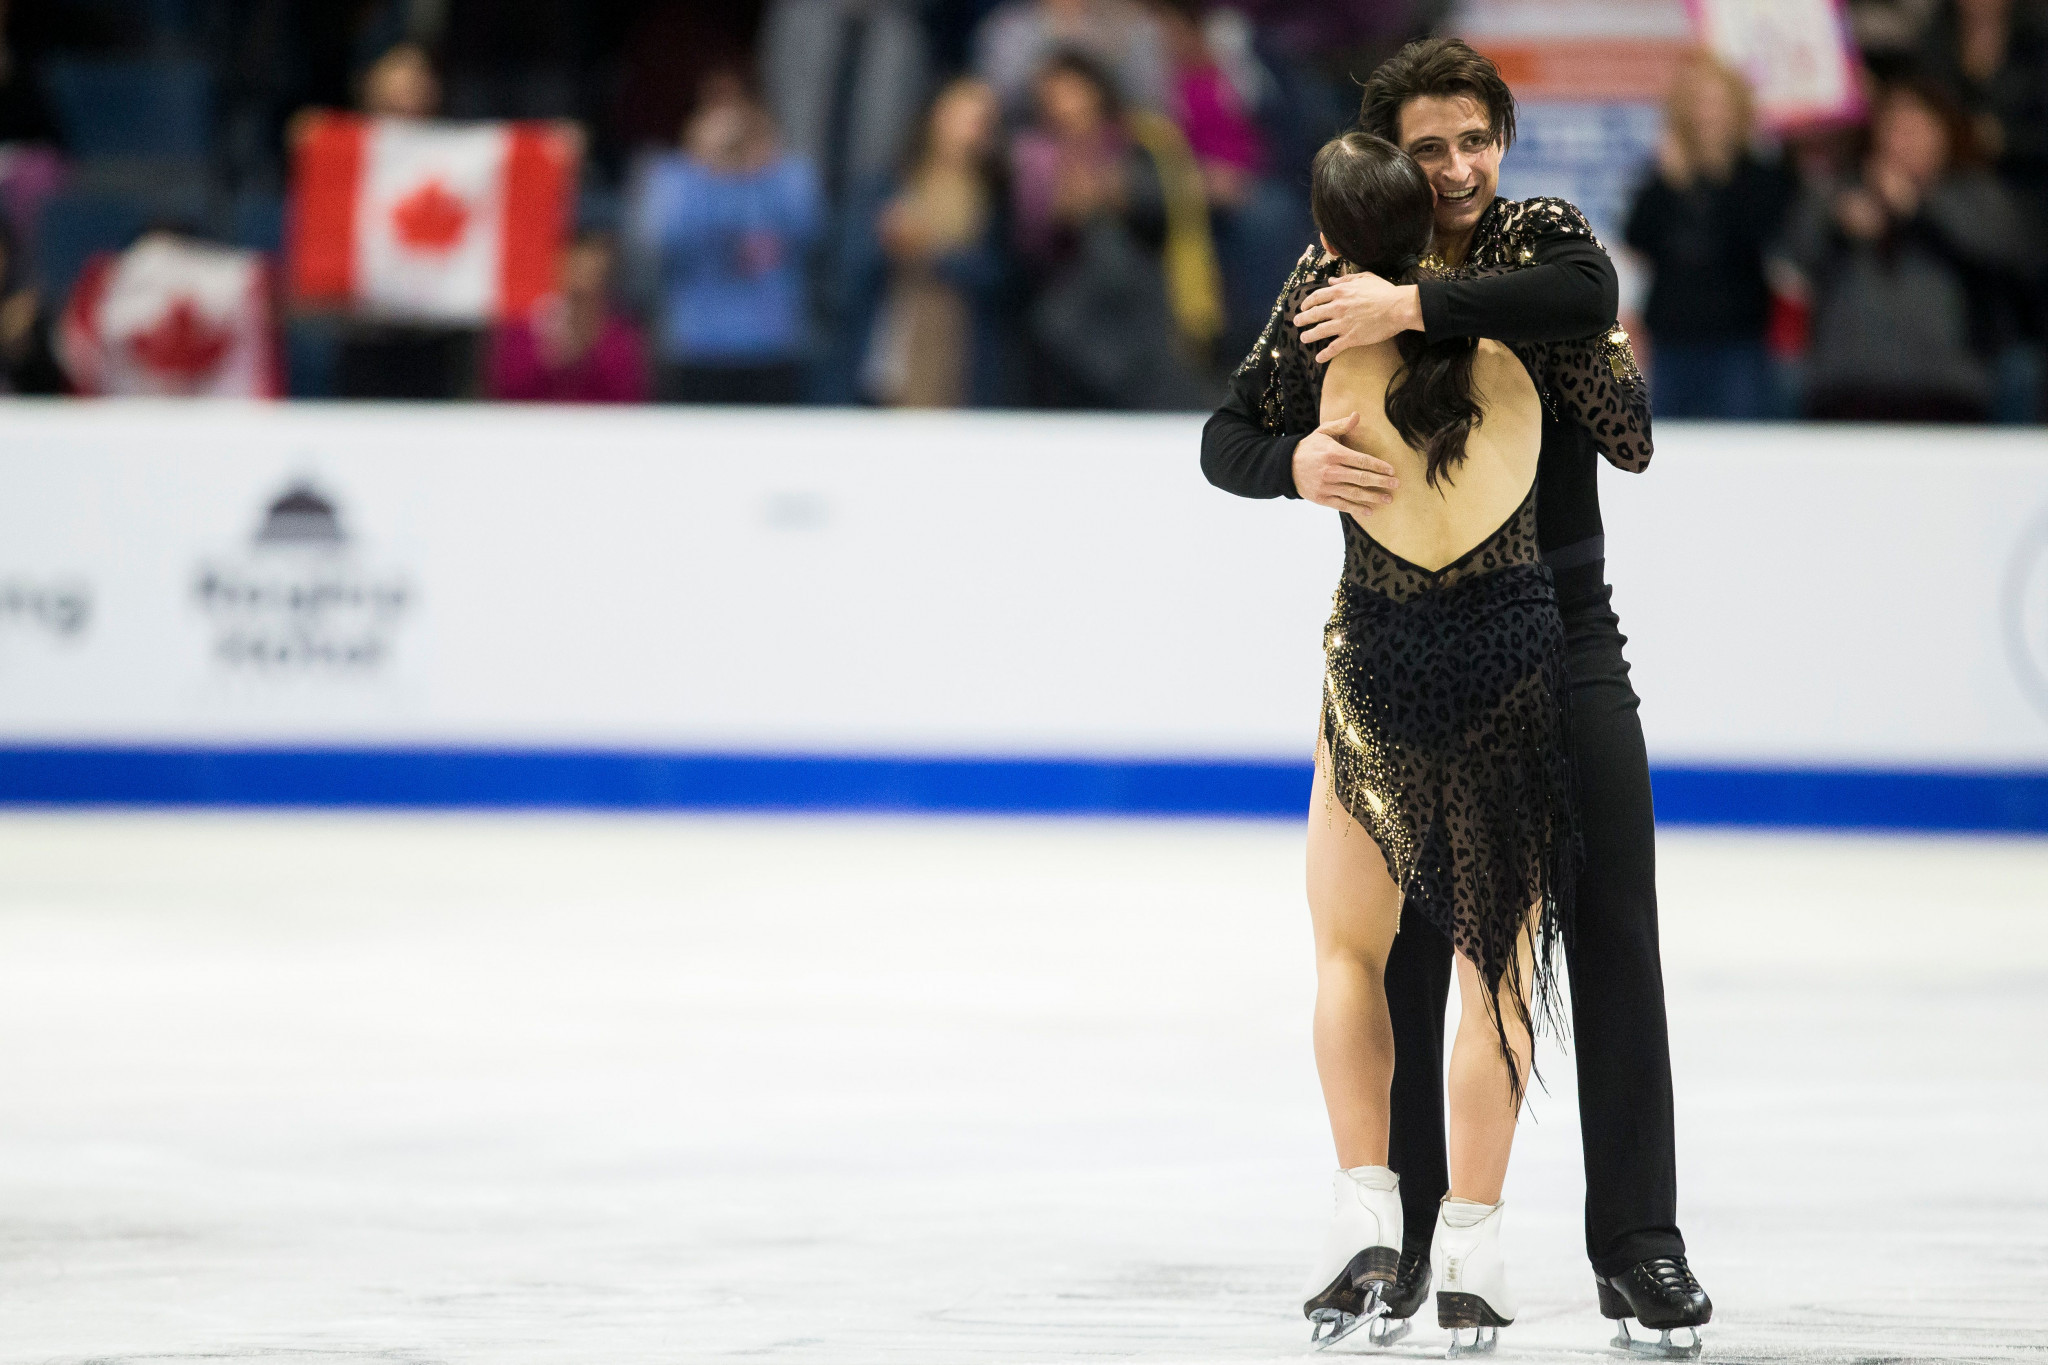 Tessa Virtue and Scott Moir set a world record breaking short programme ©Getty Images